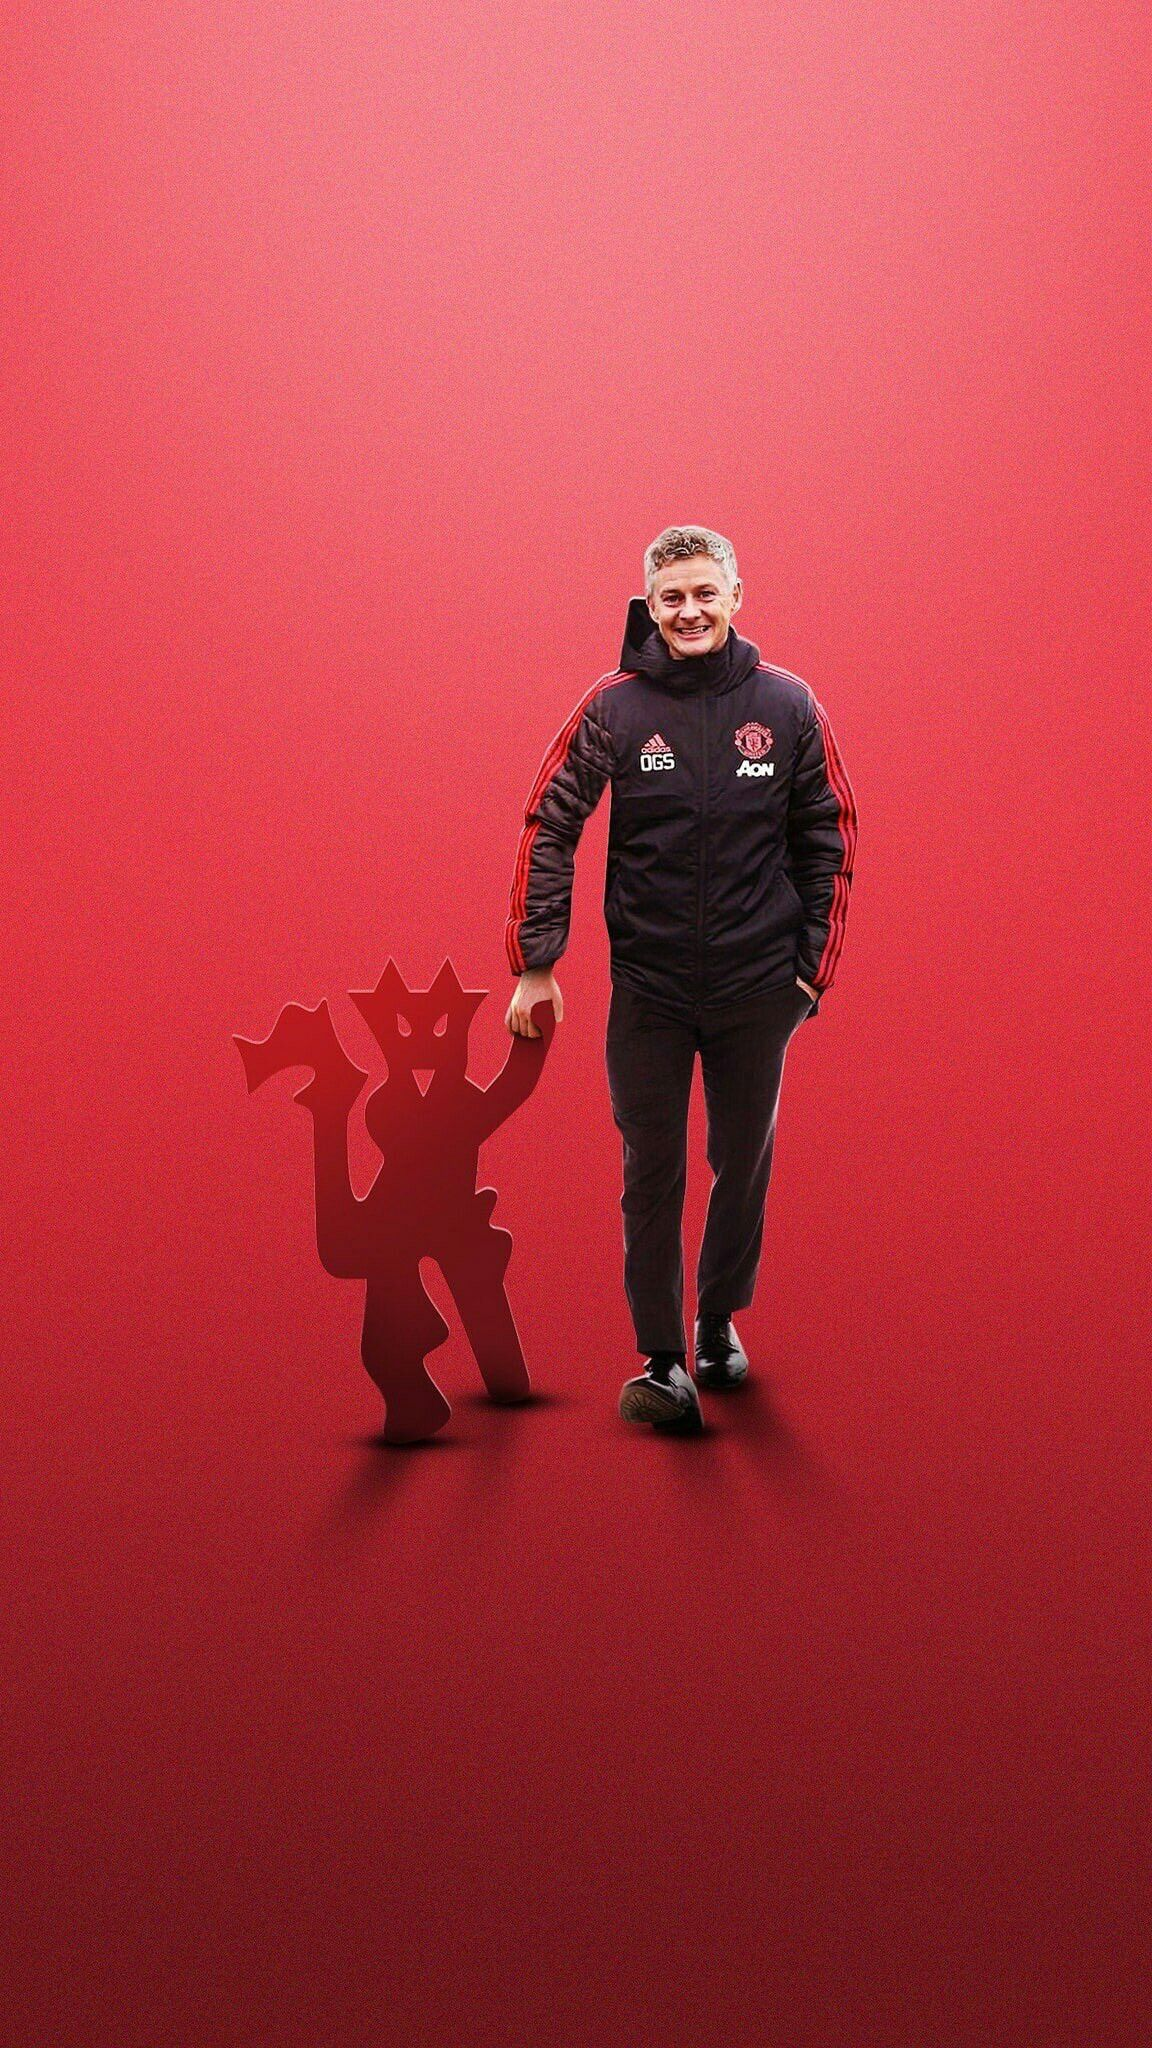 List of Best Manchester United Wallpapers Hd Wallpaper Wallpaper Solscher (Manchester United coach)✌